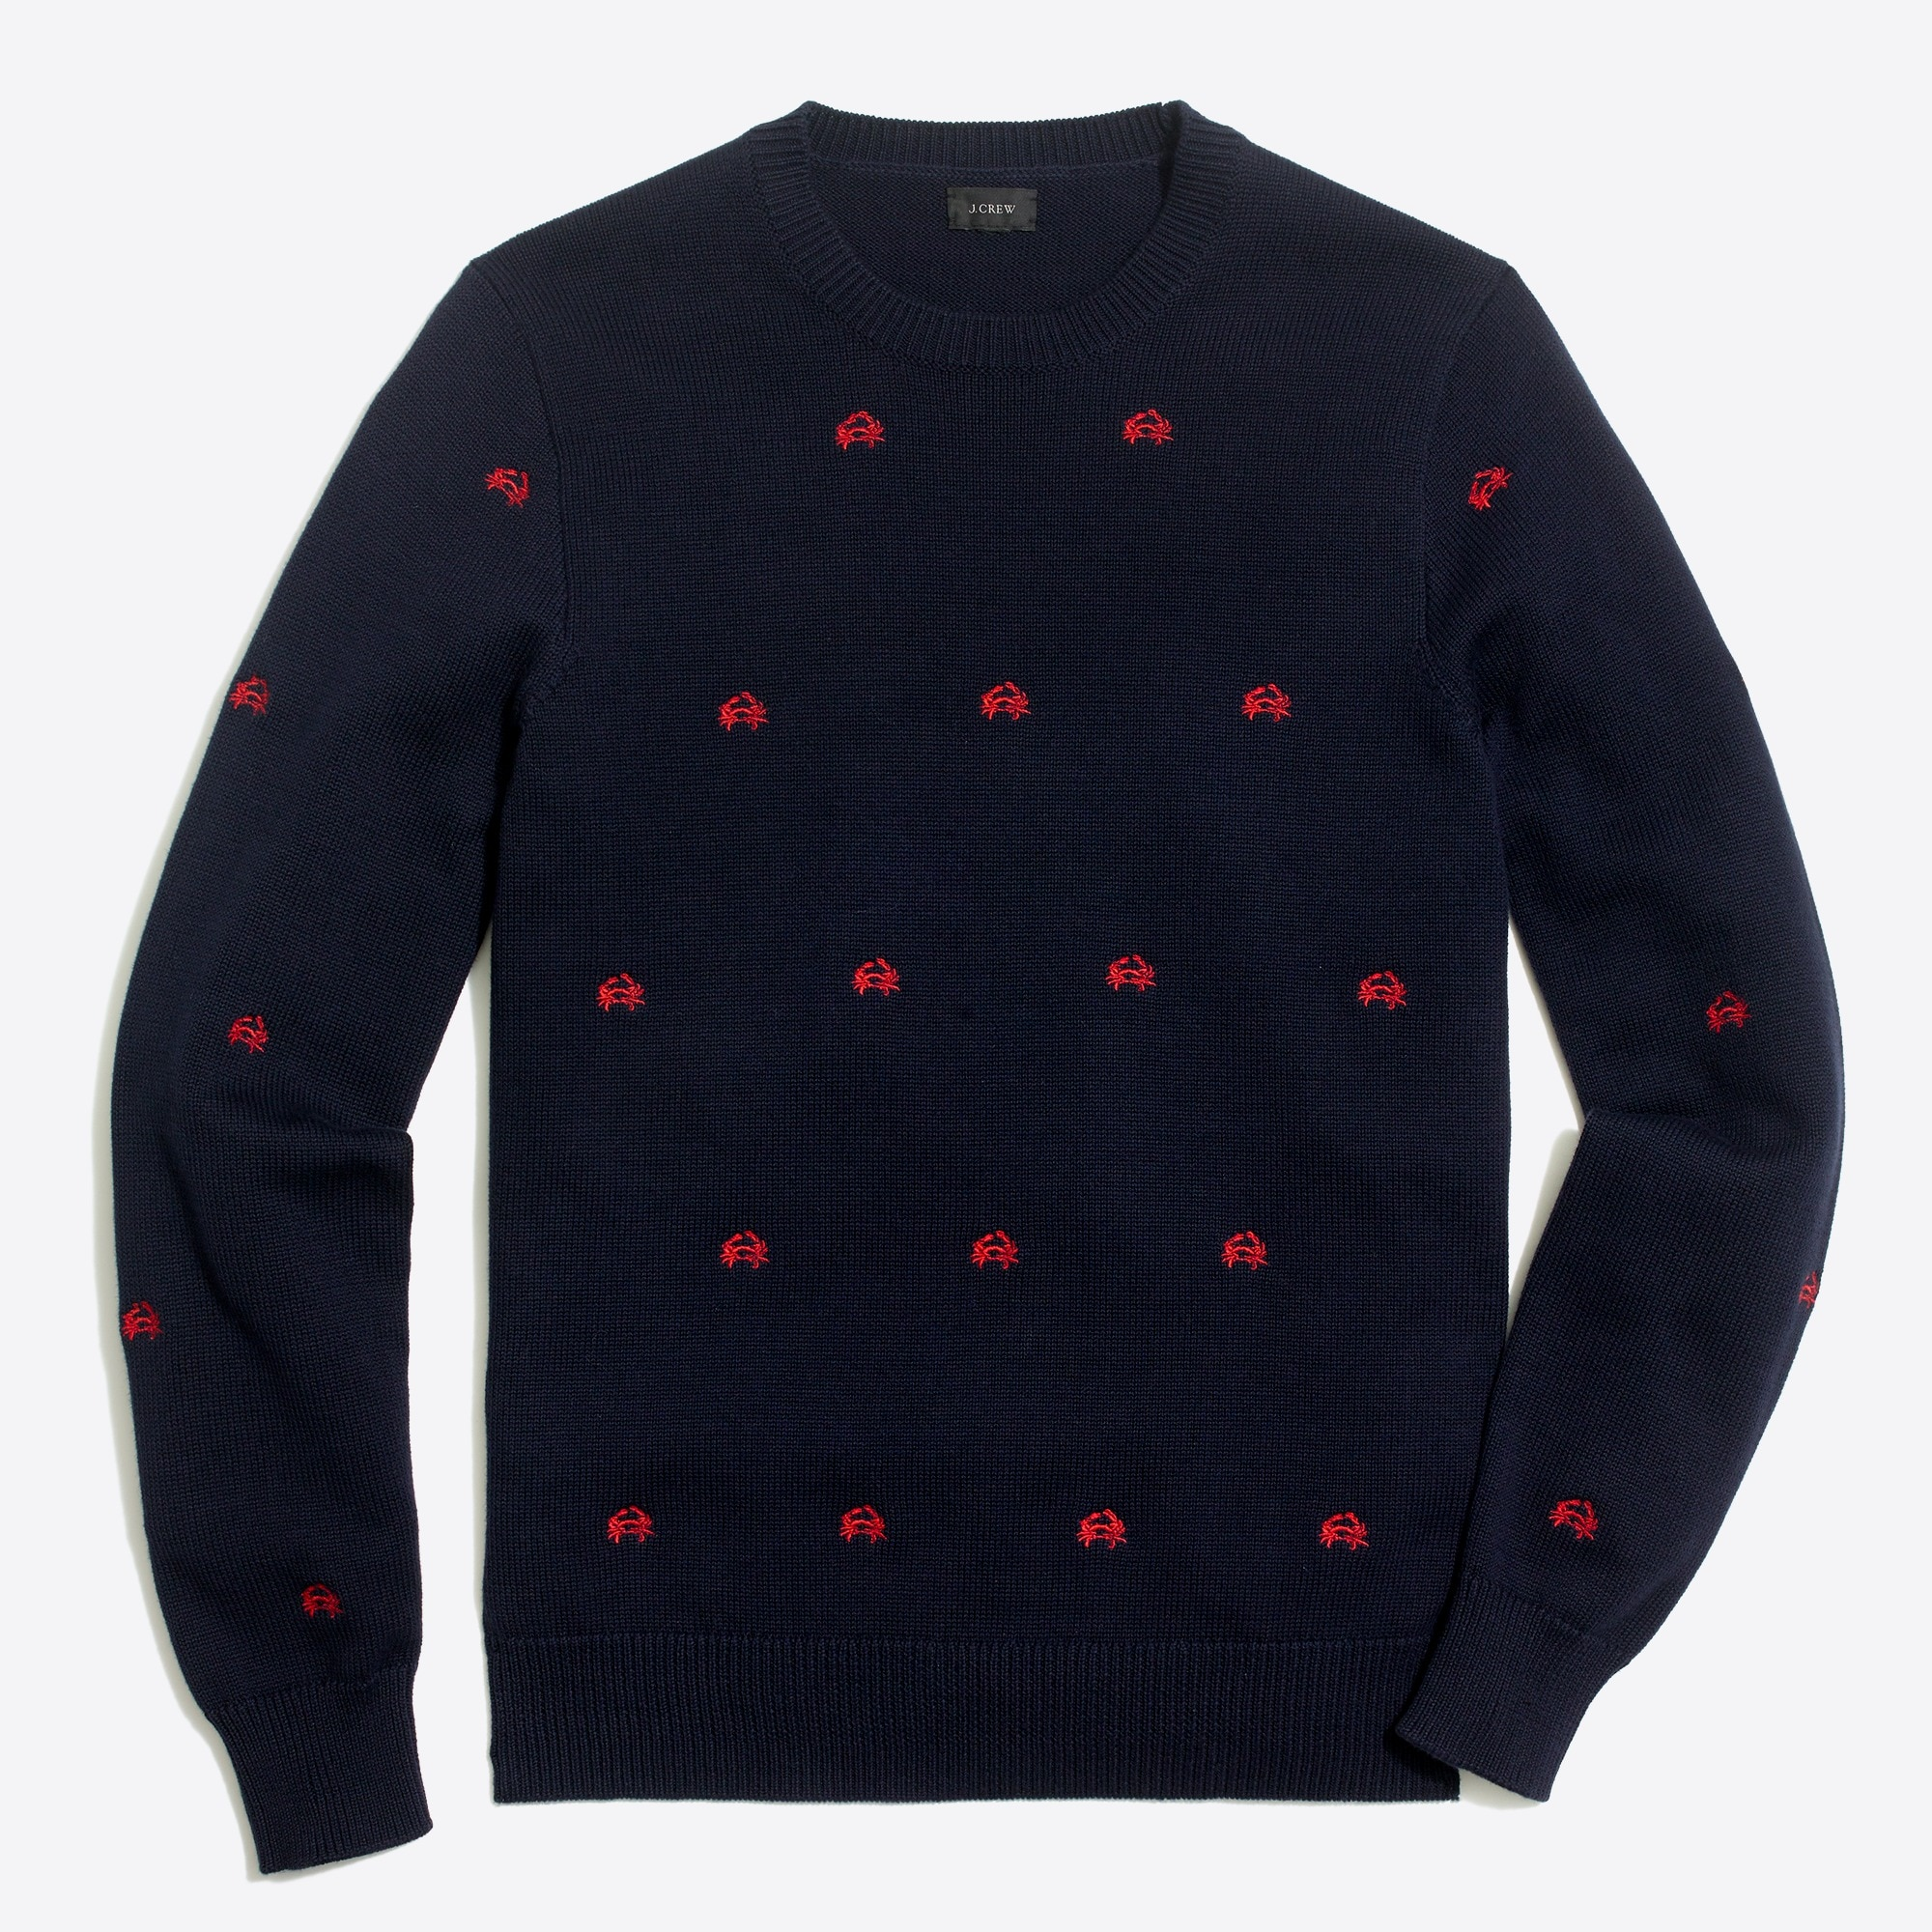 Image 2 for Embroidered crab sweater